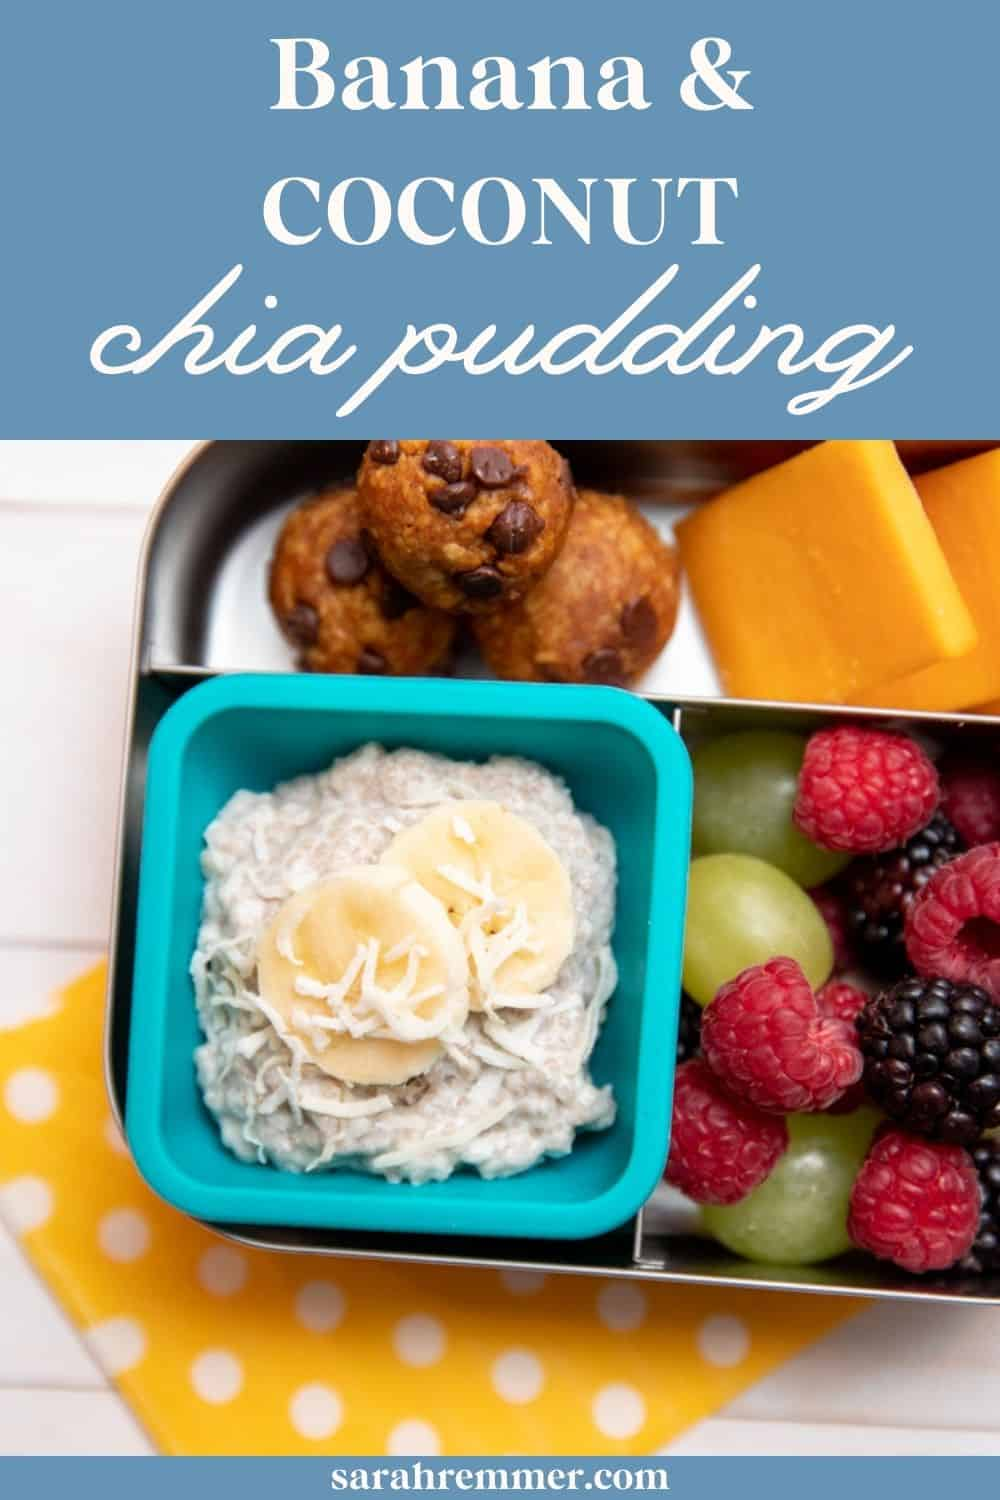 This delicious and nutritious chia pudding contains 7 simple ingredients, which makes it snack-worthy, but also a perfect nutritious treat!